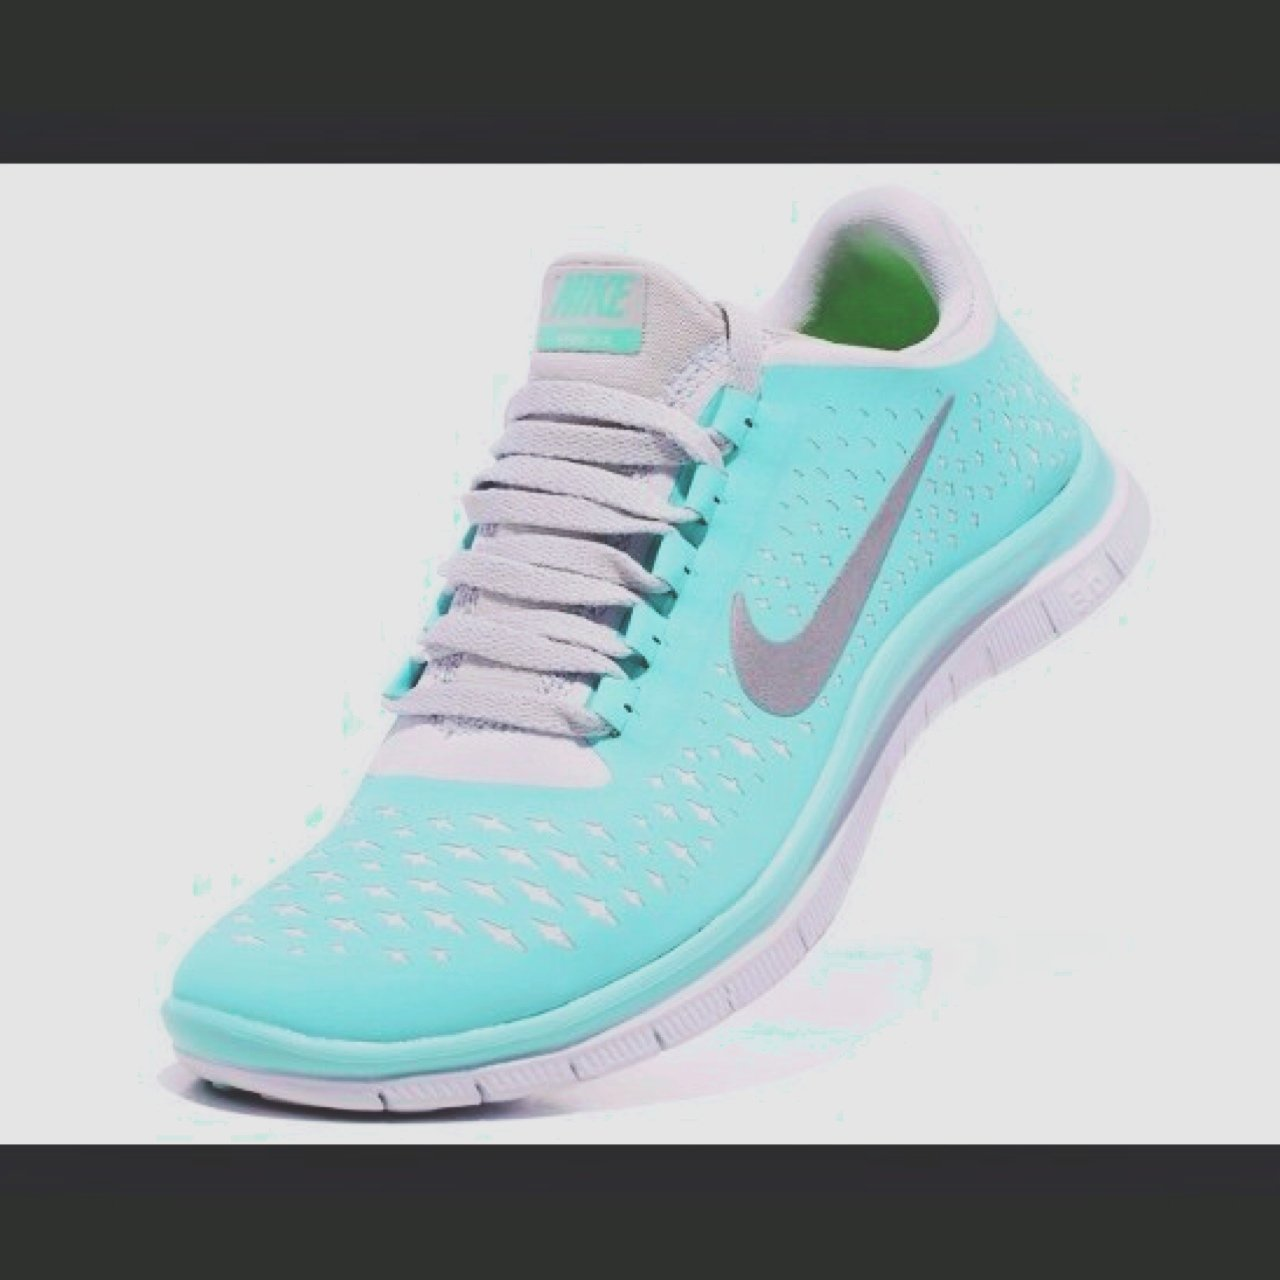 6c709016597a Nike free run Tiffany blue size 5.5. Identical to the pm me. - Depop